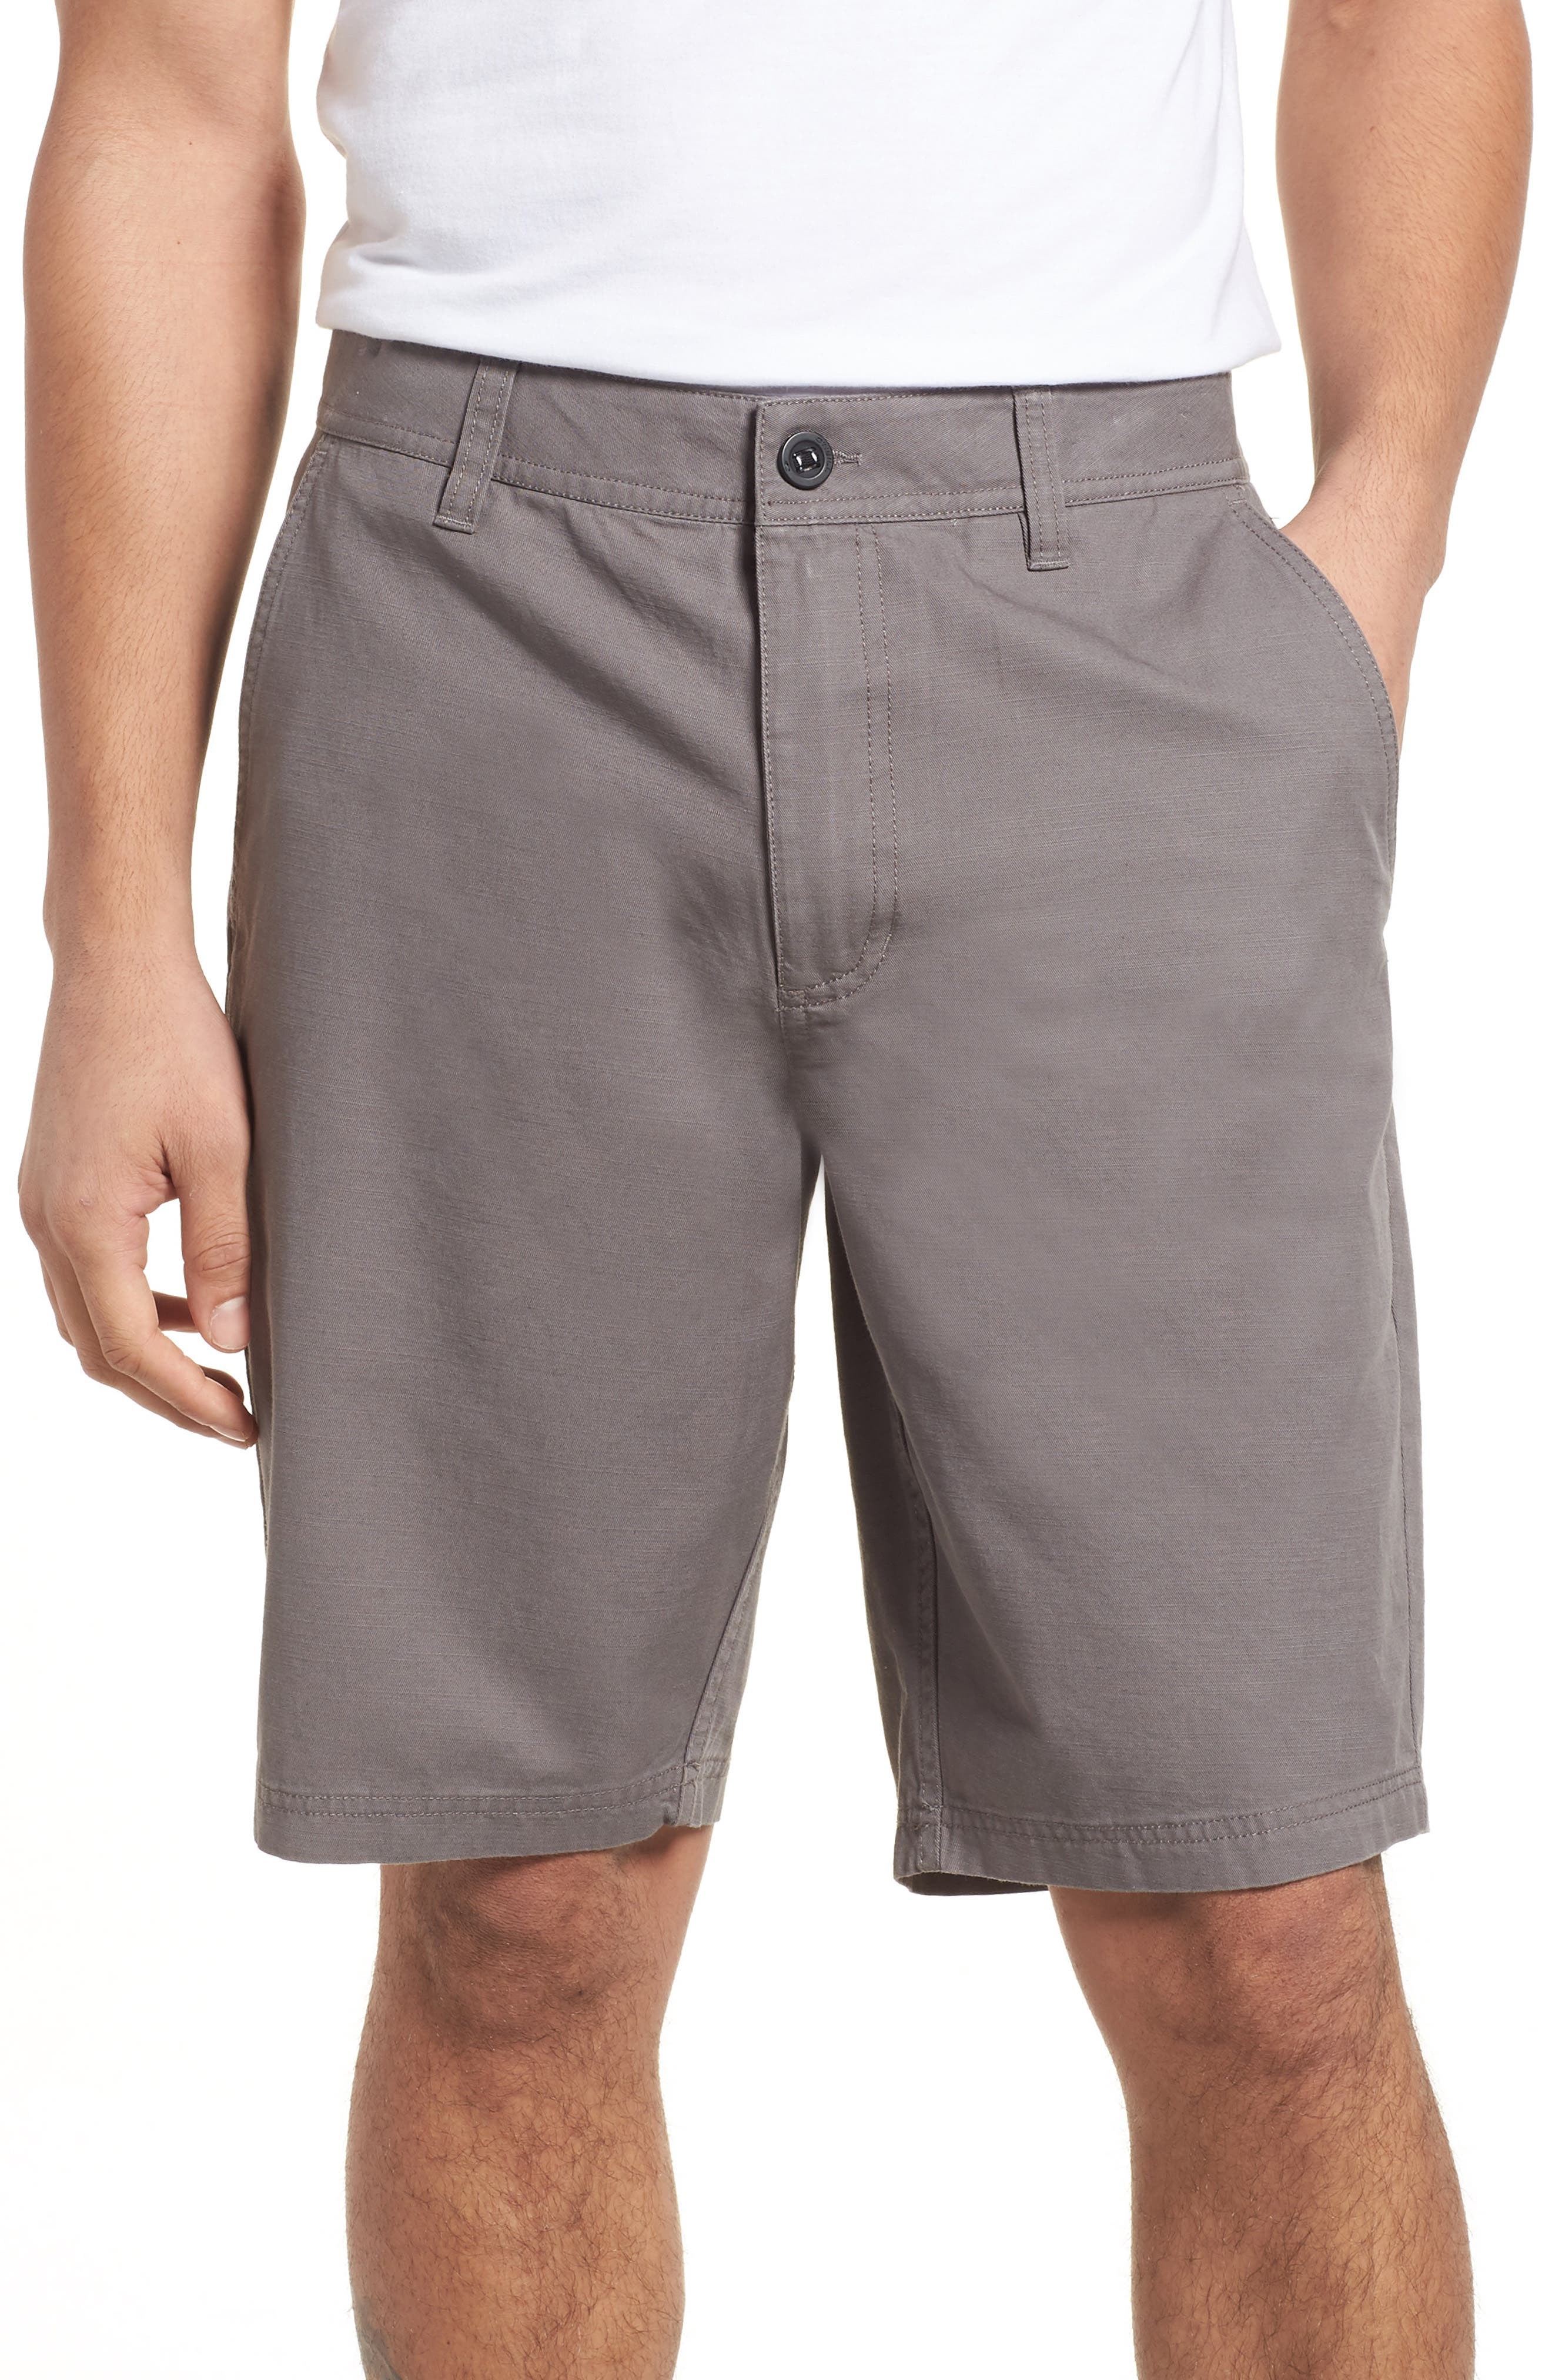 Jay Chino Shorts,                             Main thumbnail 1, color,                             Grey